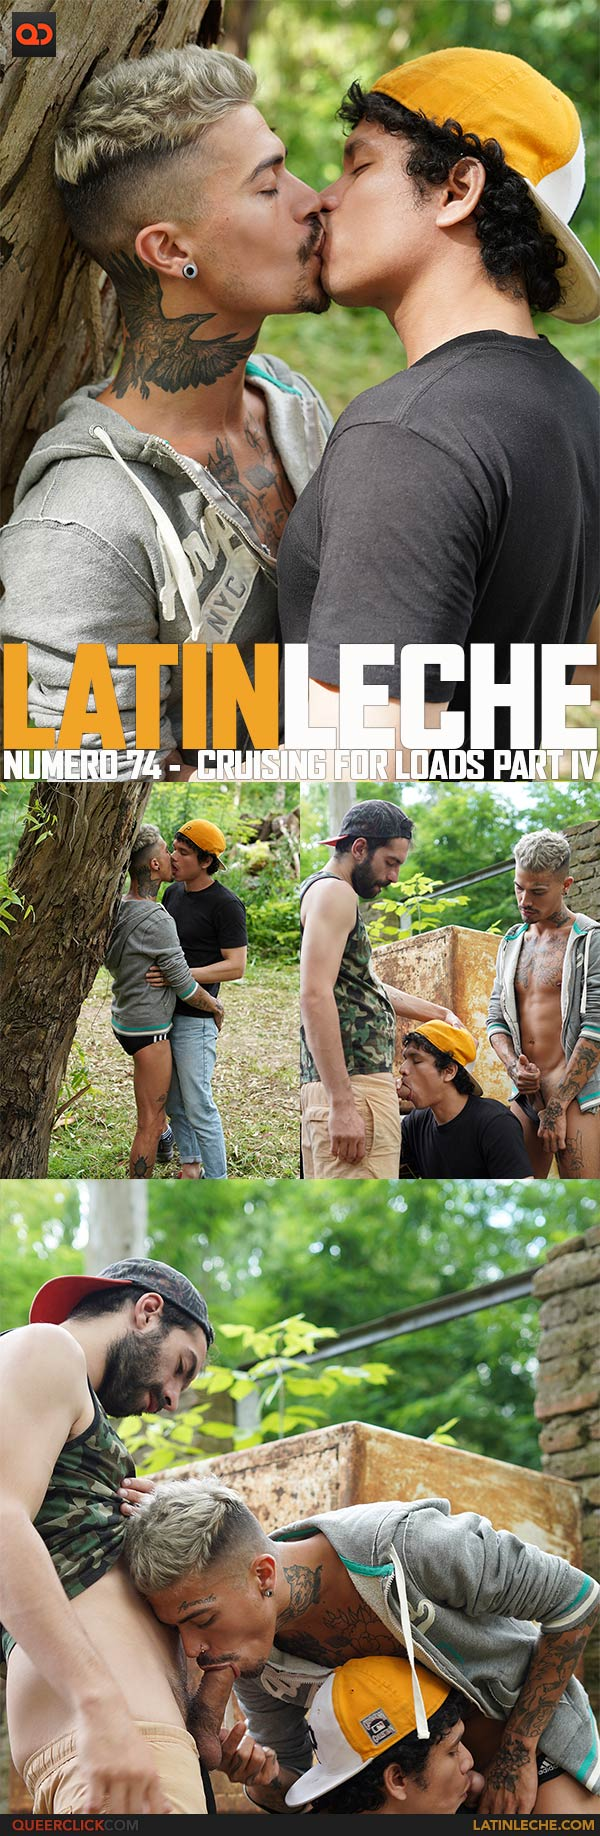 Latin Leche: Numero 74 -  Cruising For Loads Part IV